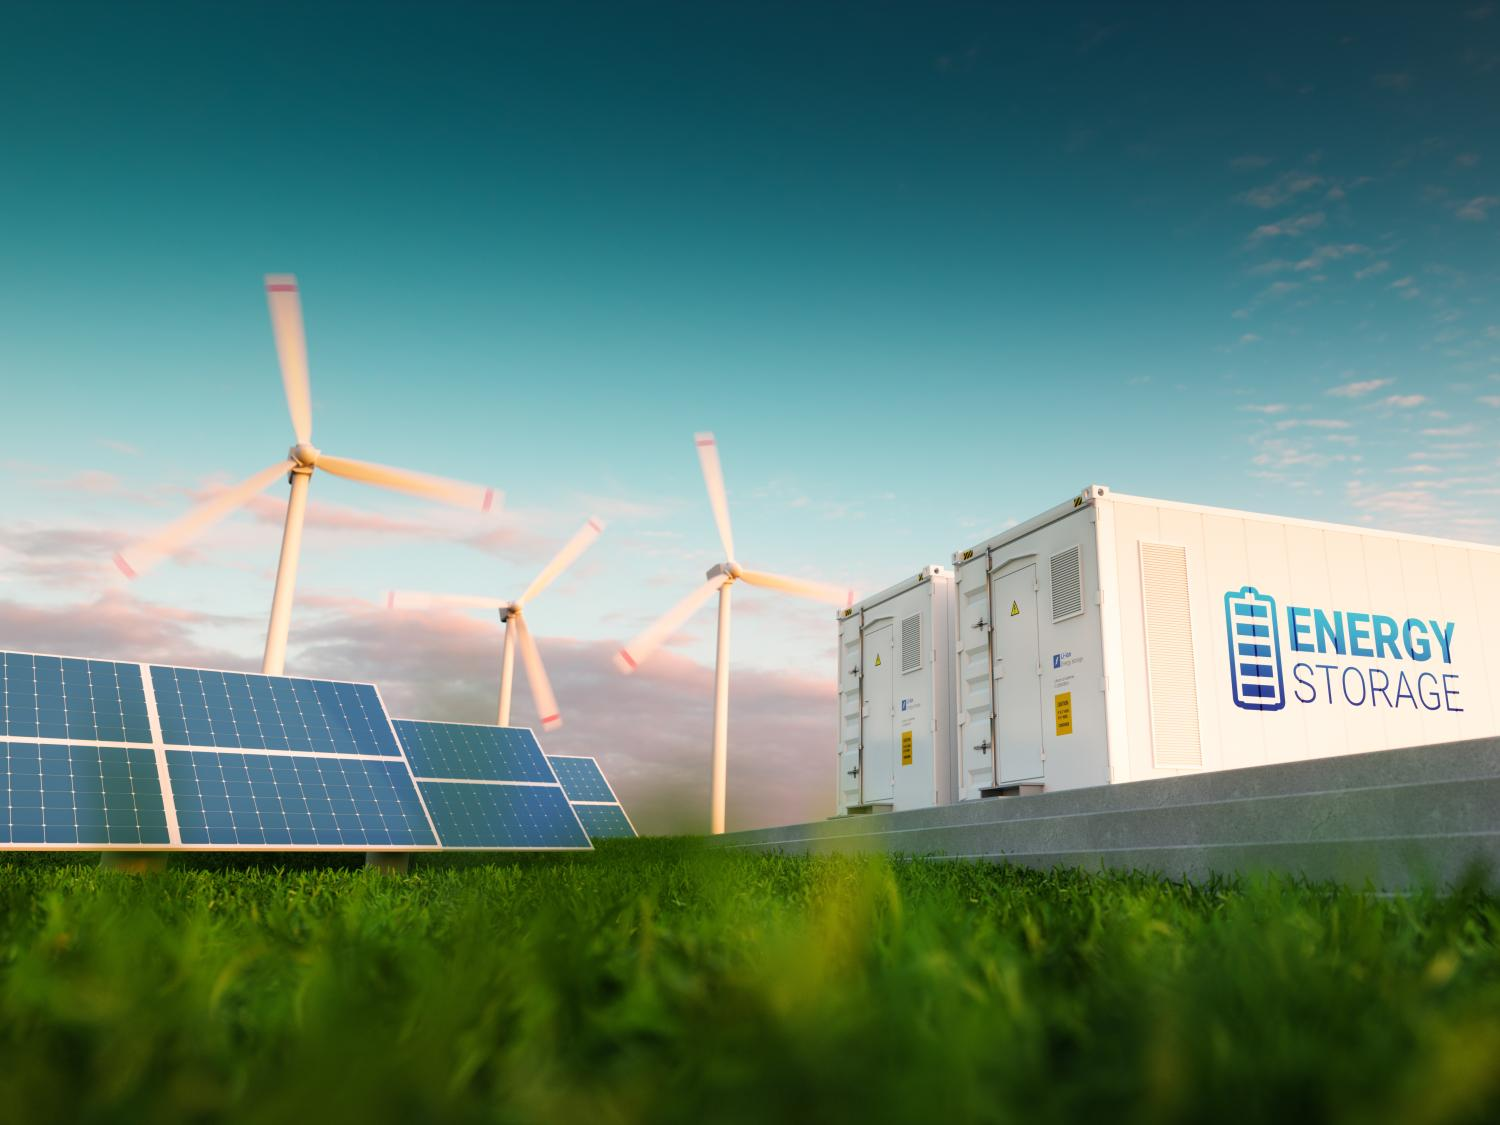 Image of wind power and energy storage.